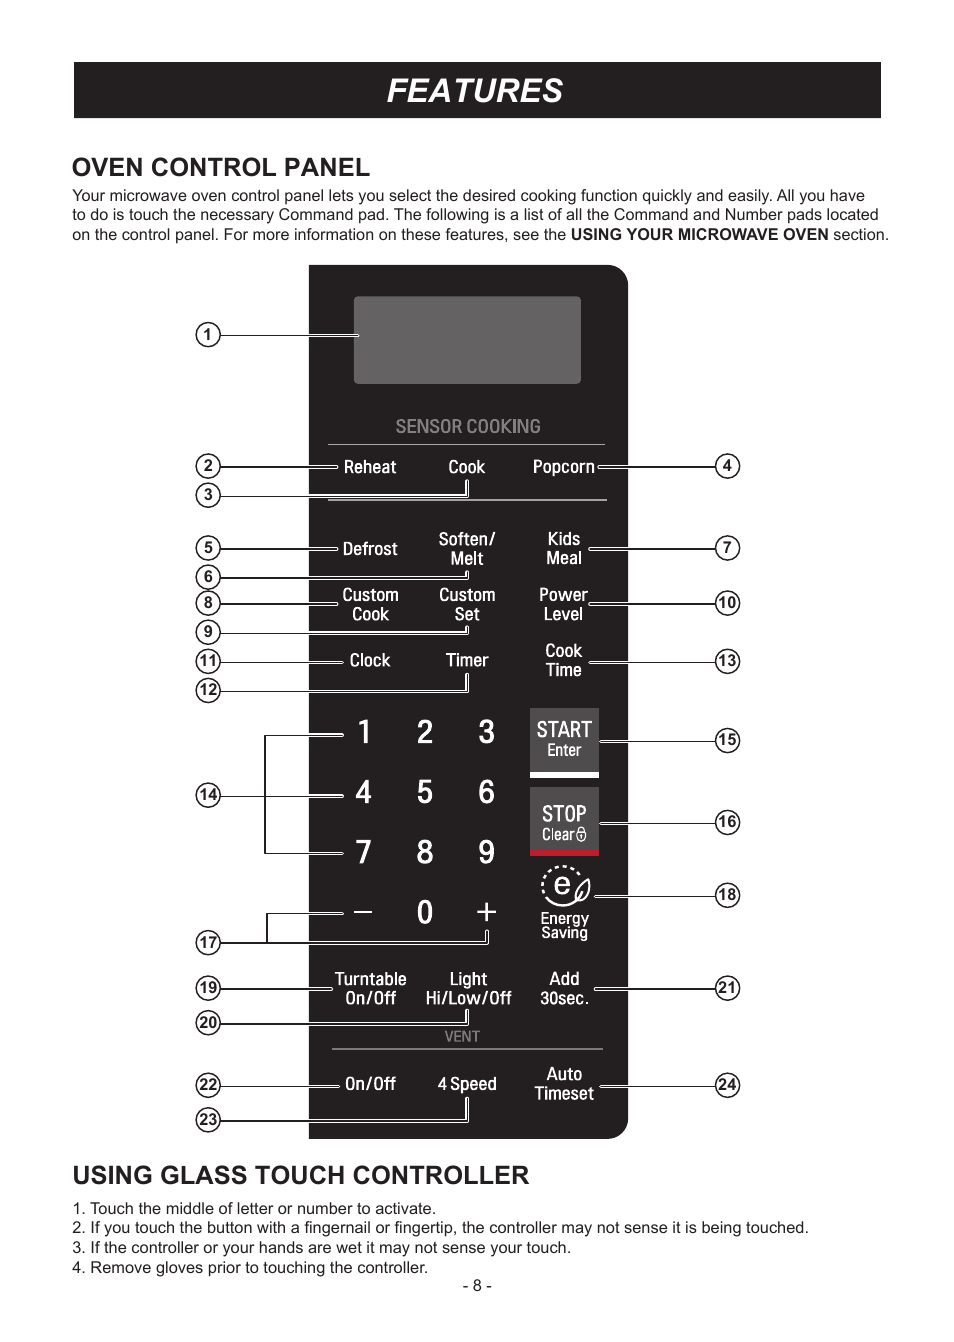 Features, Using glass touch controller, Oven control panel